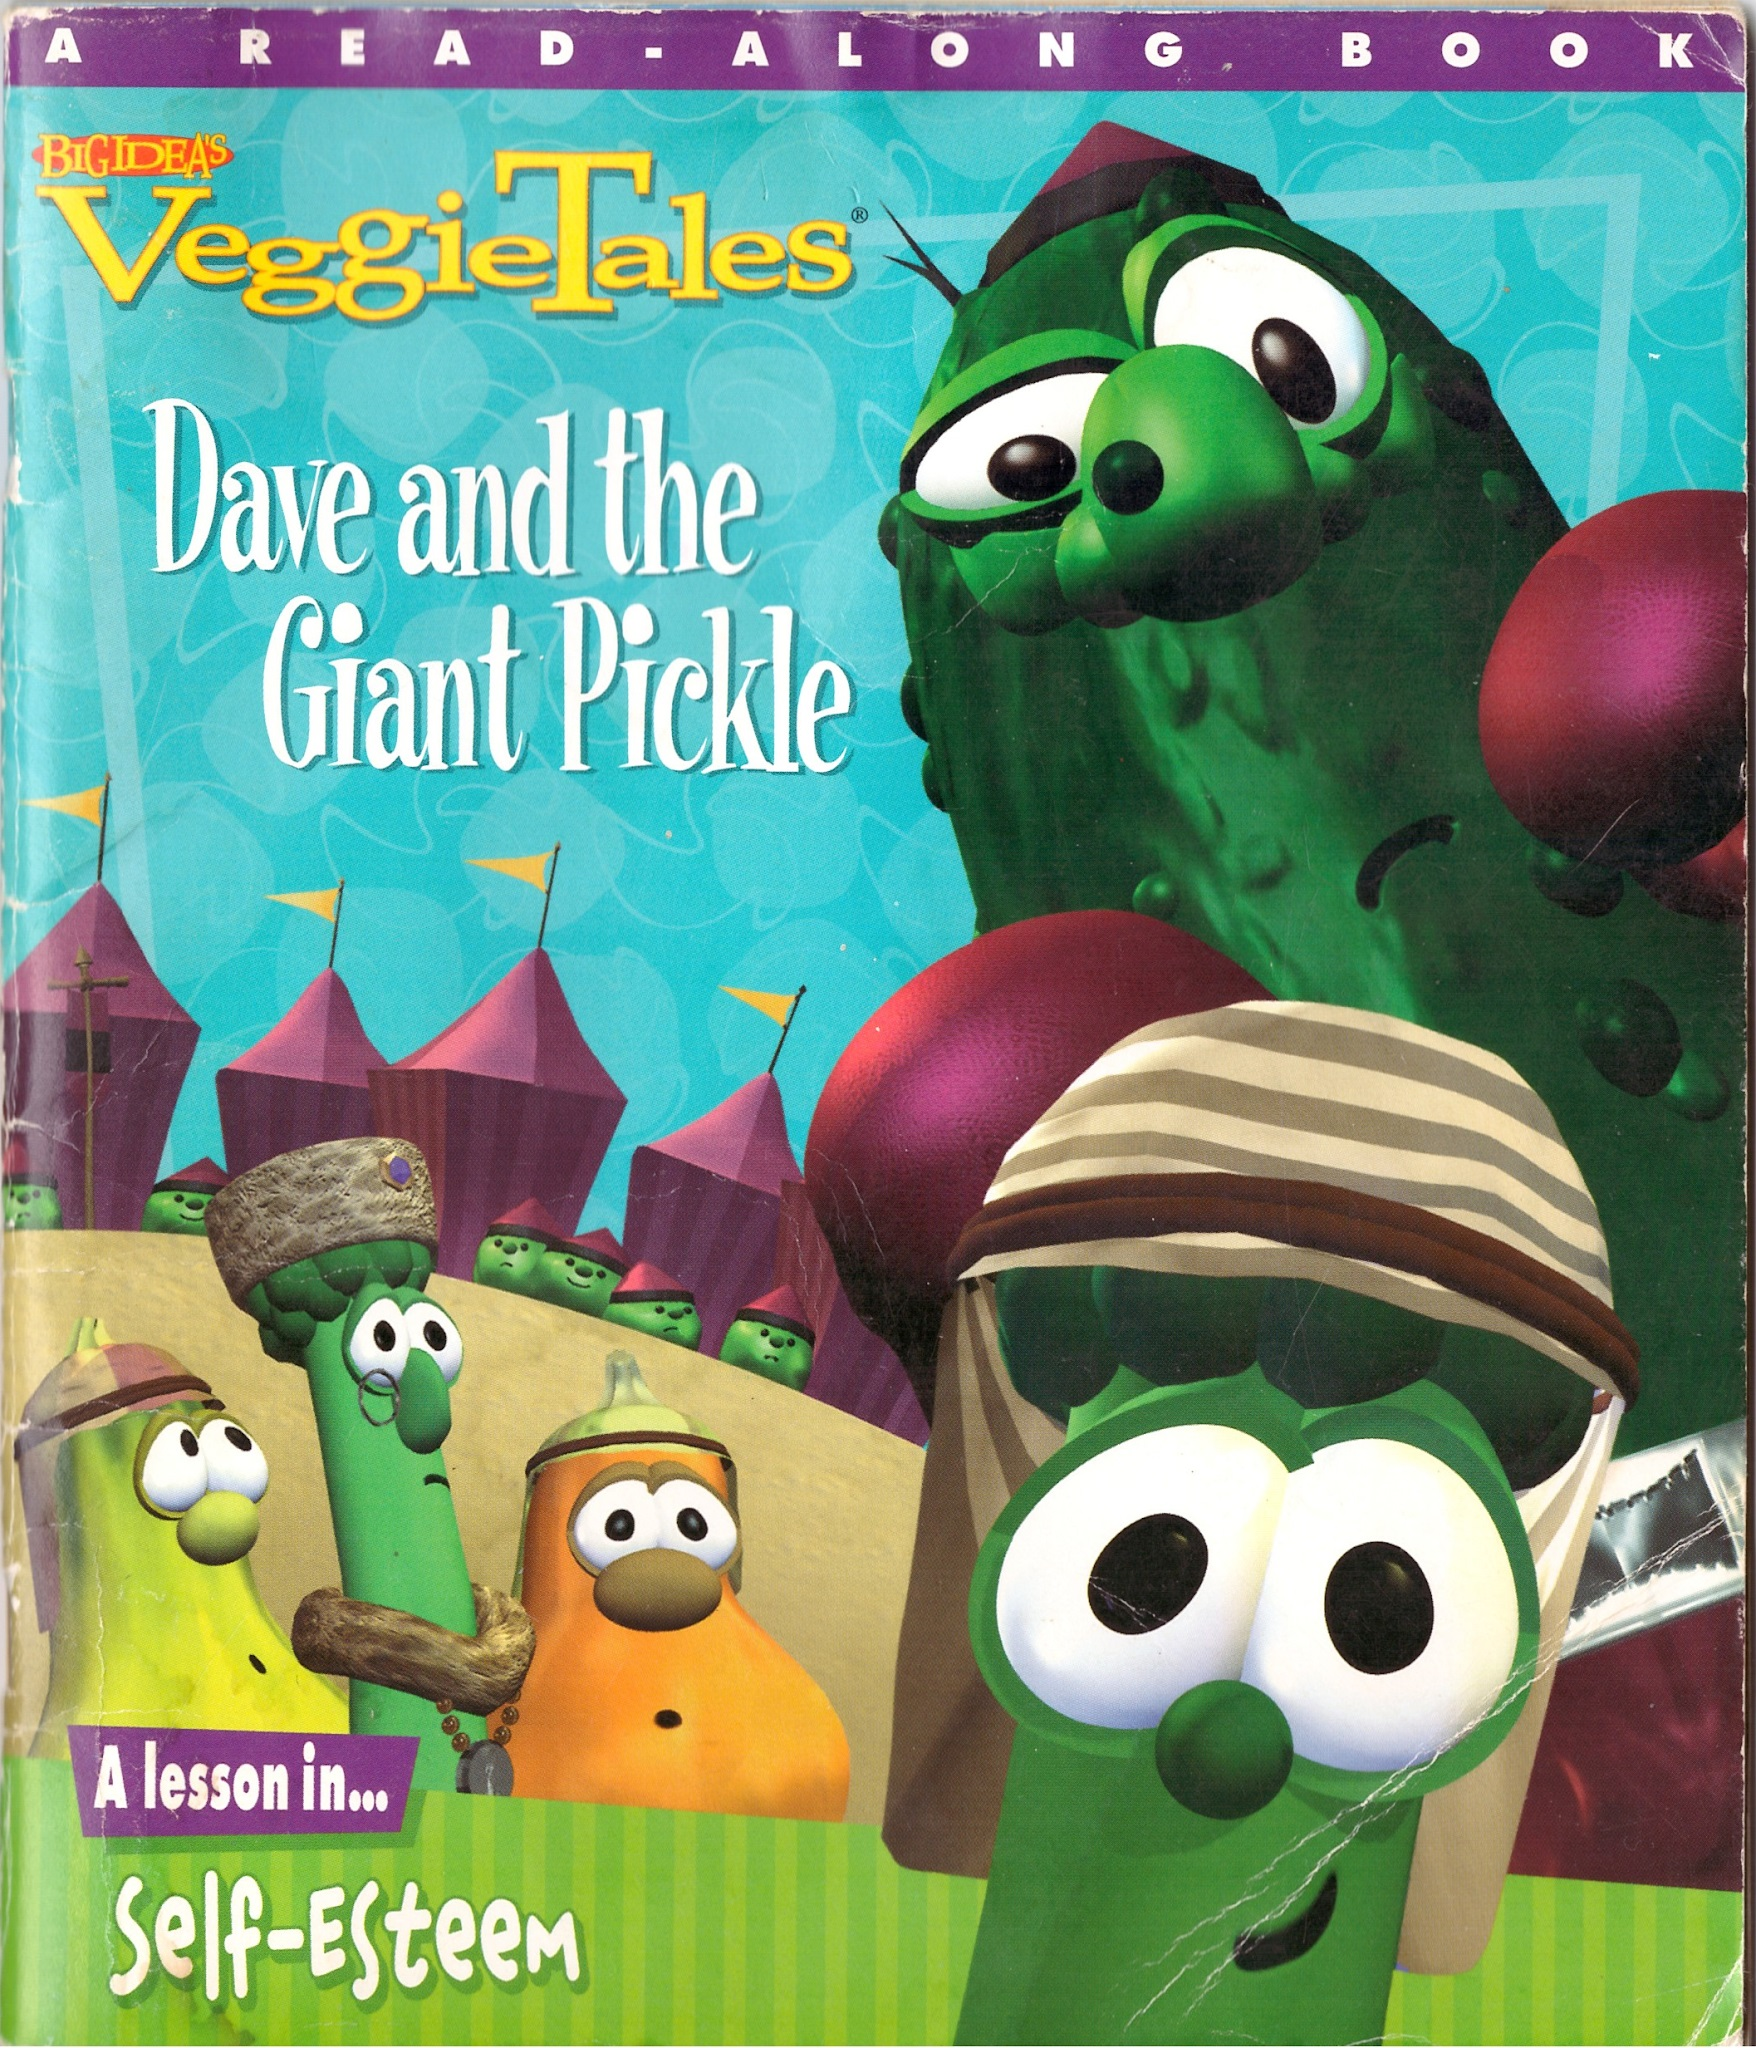 Dave and the Giant Pickle (book)/Credits